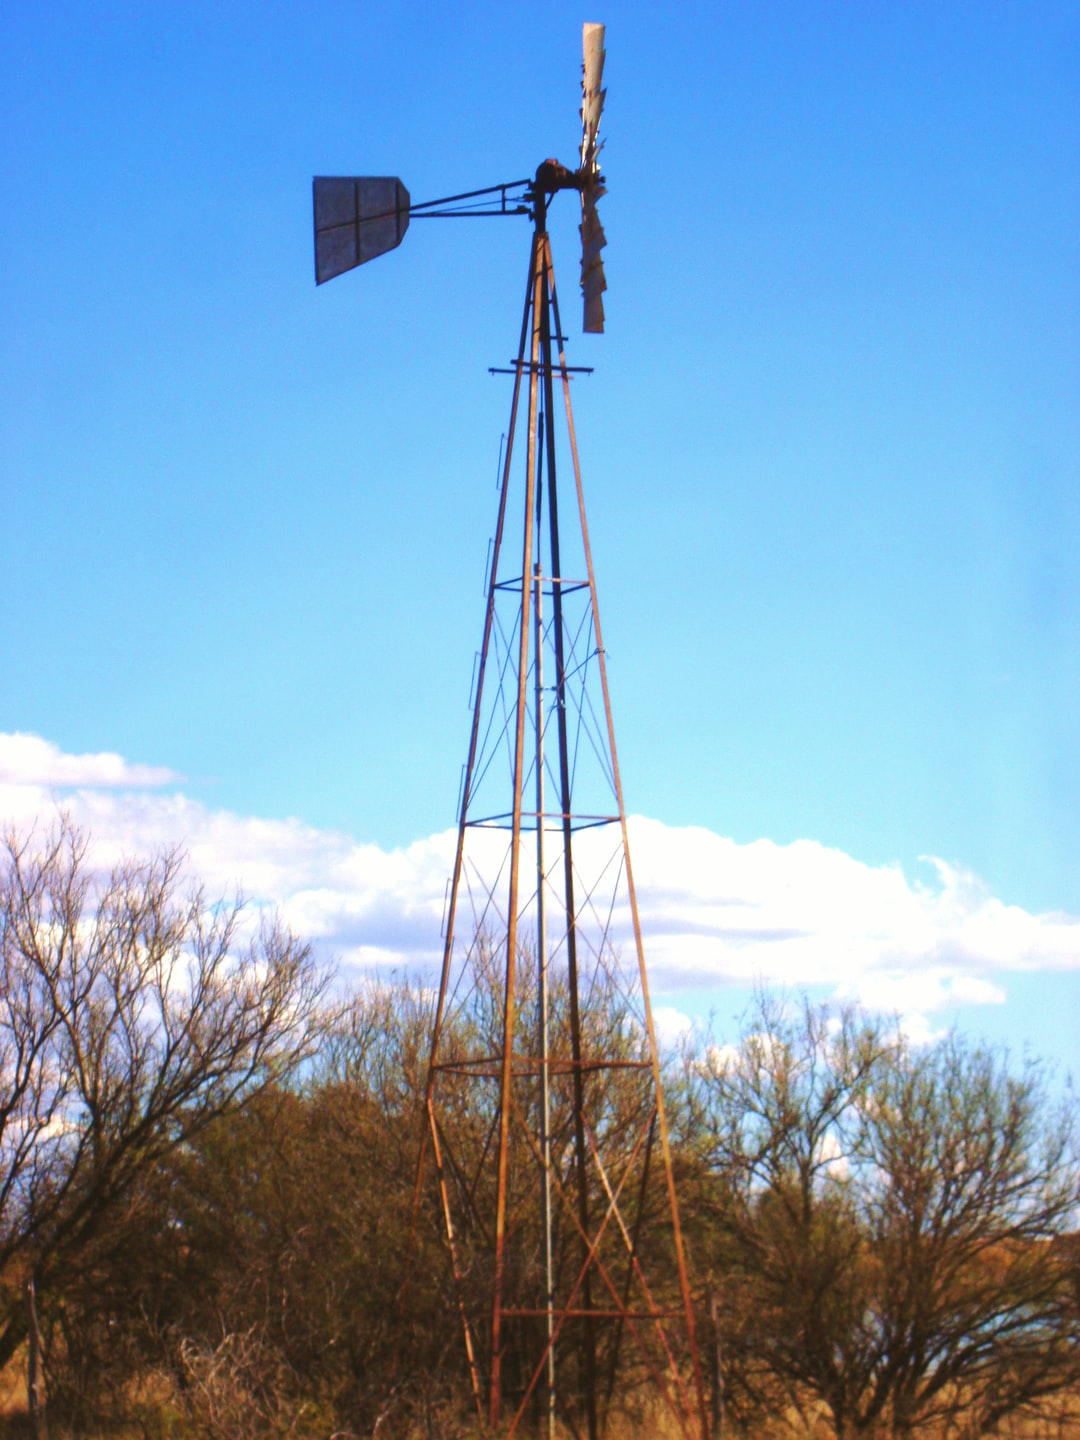 Mennonite windmill, water pump surrounded by shrubs under partly cloudy skies.